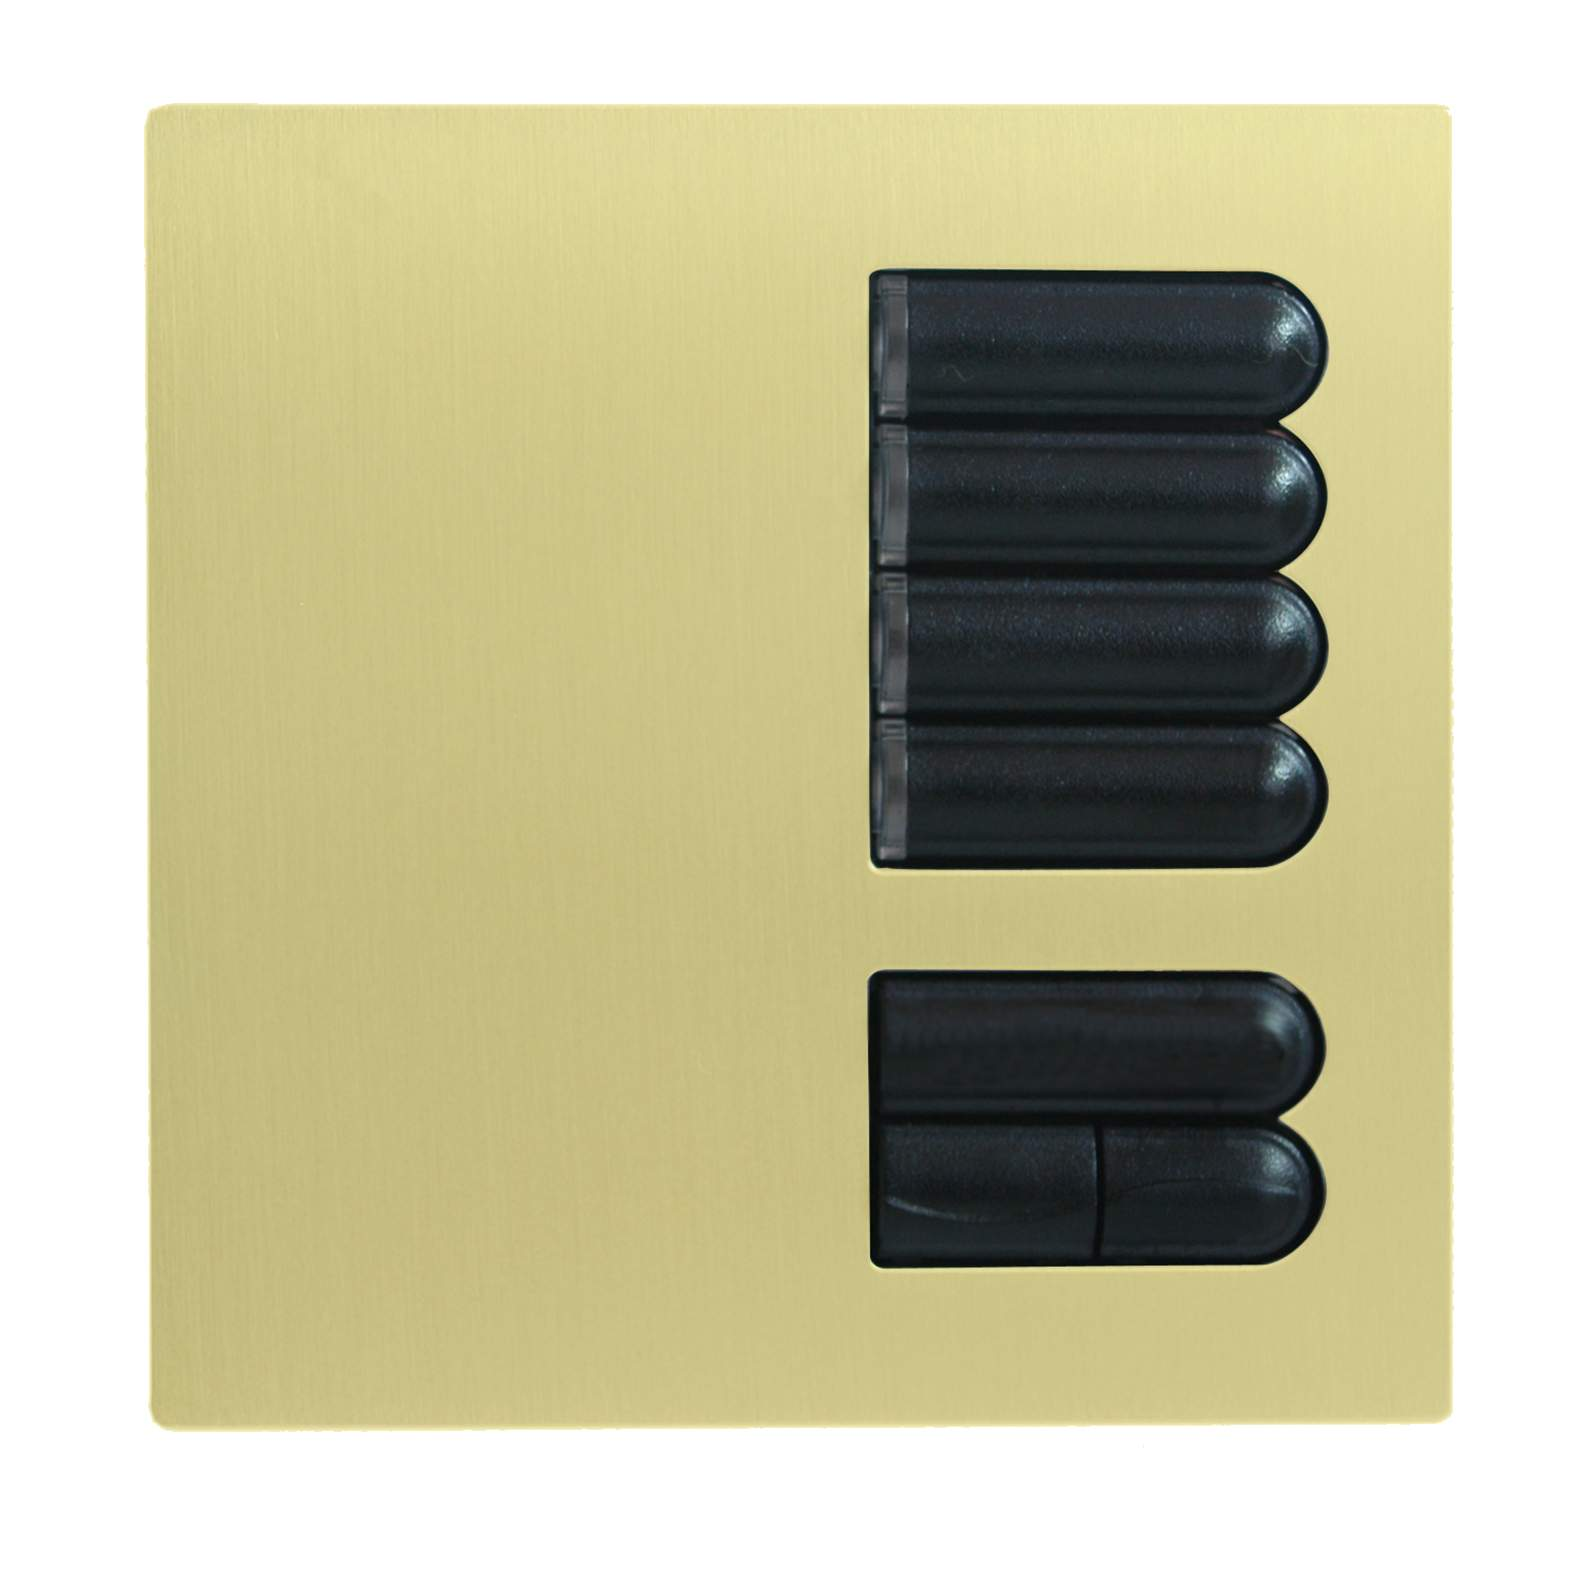 lutron european wall switch cover plate egrx4s satin brass. Black Bedroom Furniture Sets. Home Design Ideas